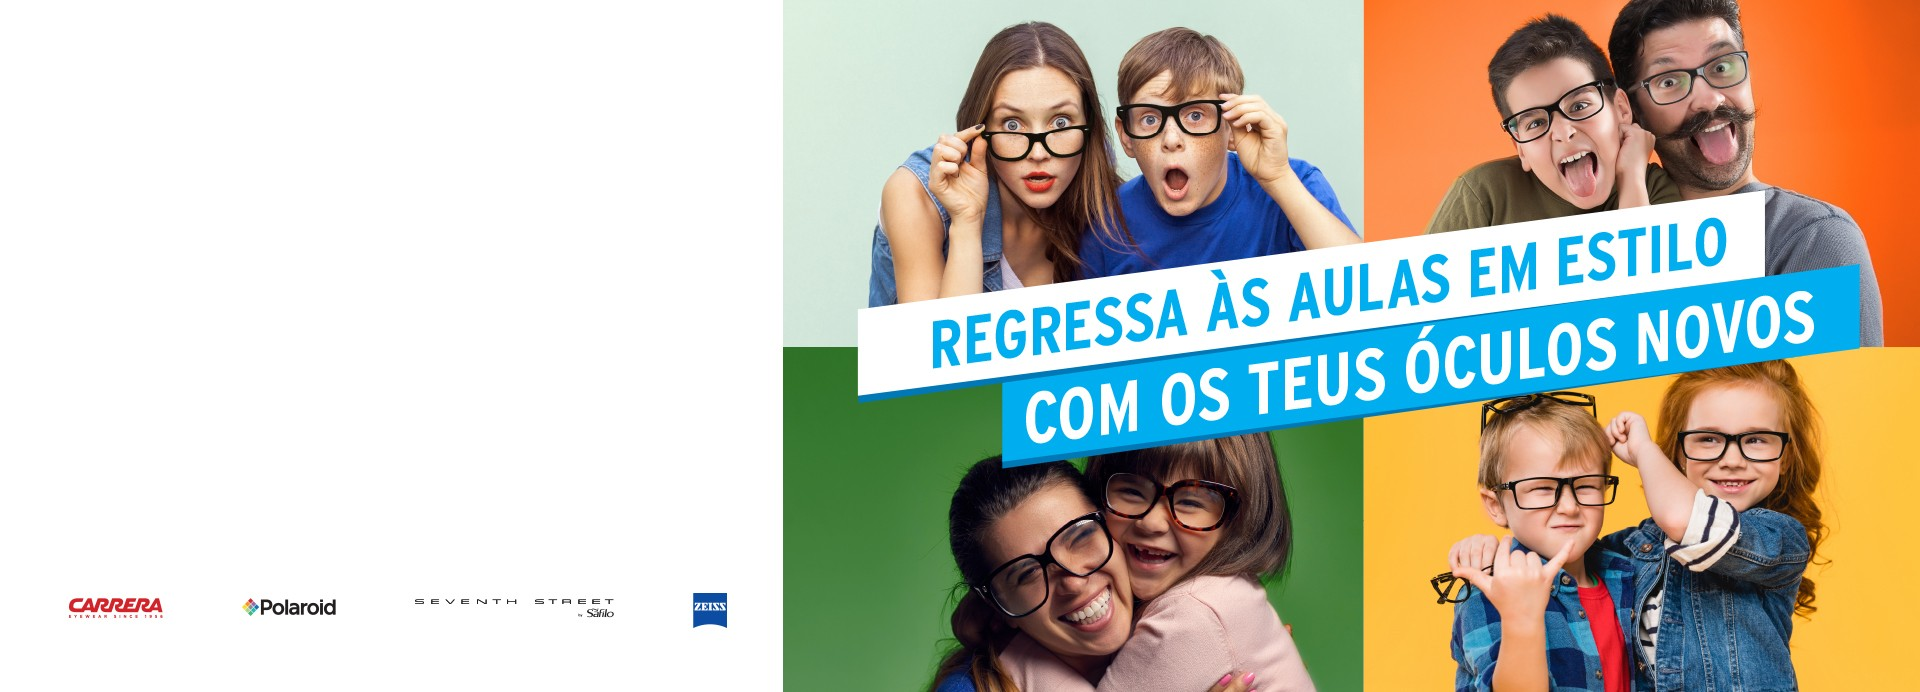 REGRESSO